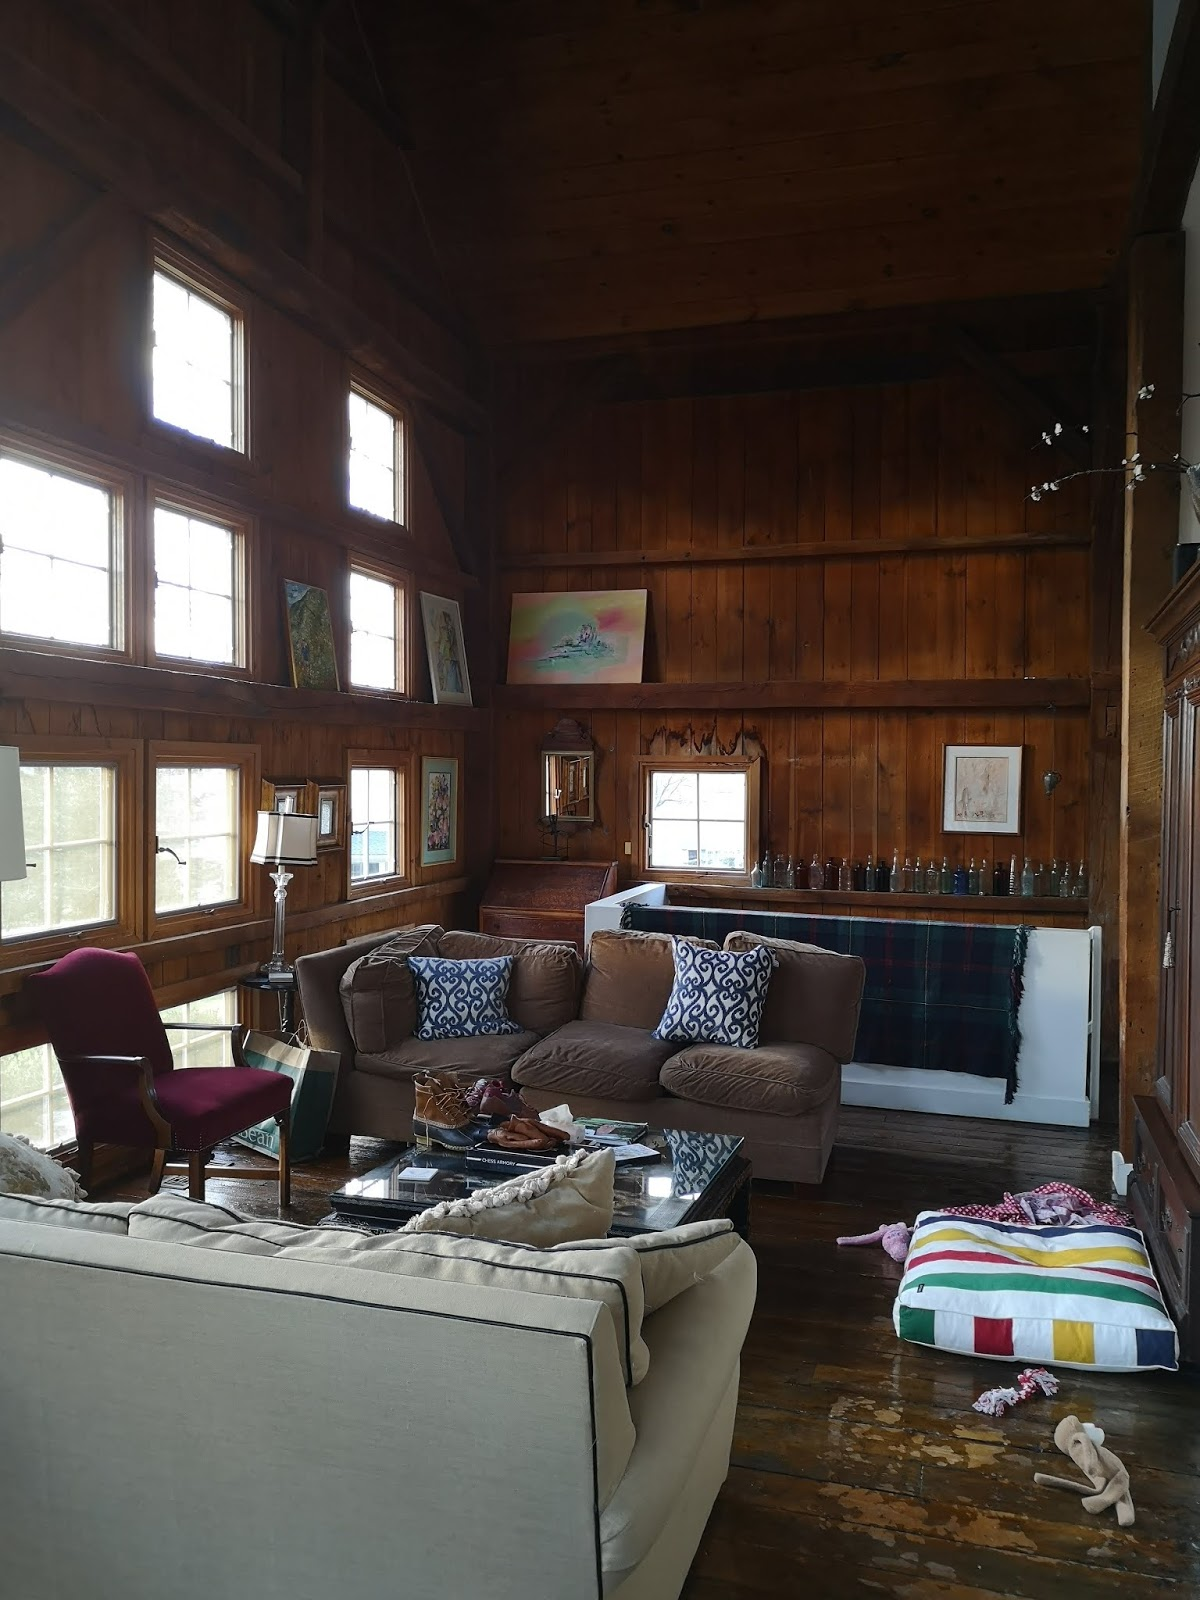 Our Converted Barn Airbnb Rental in Fairfield, Connecticut